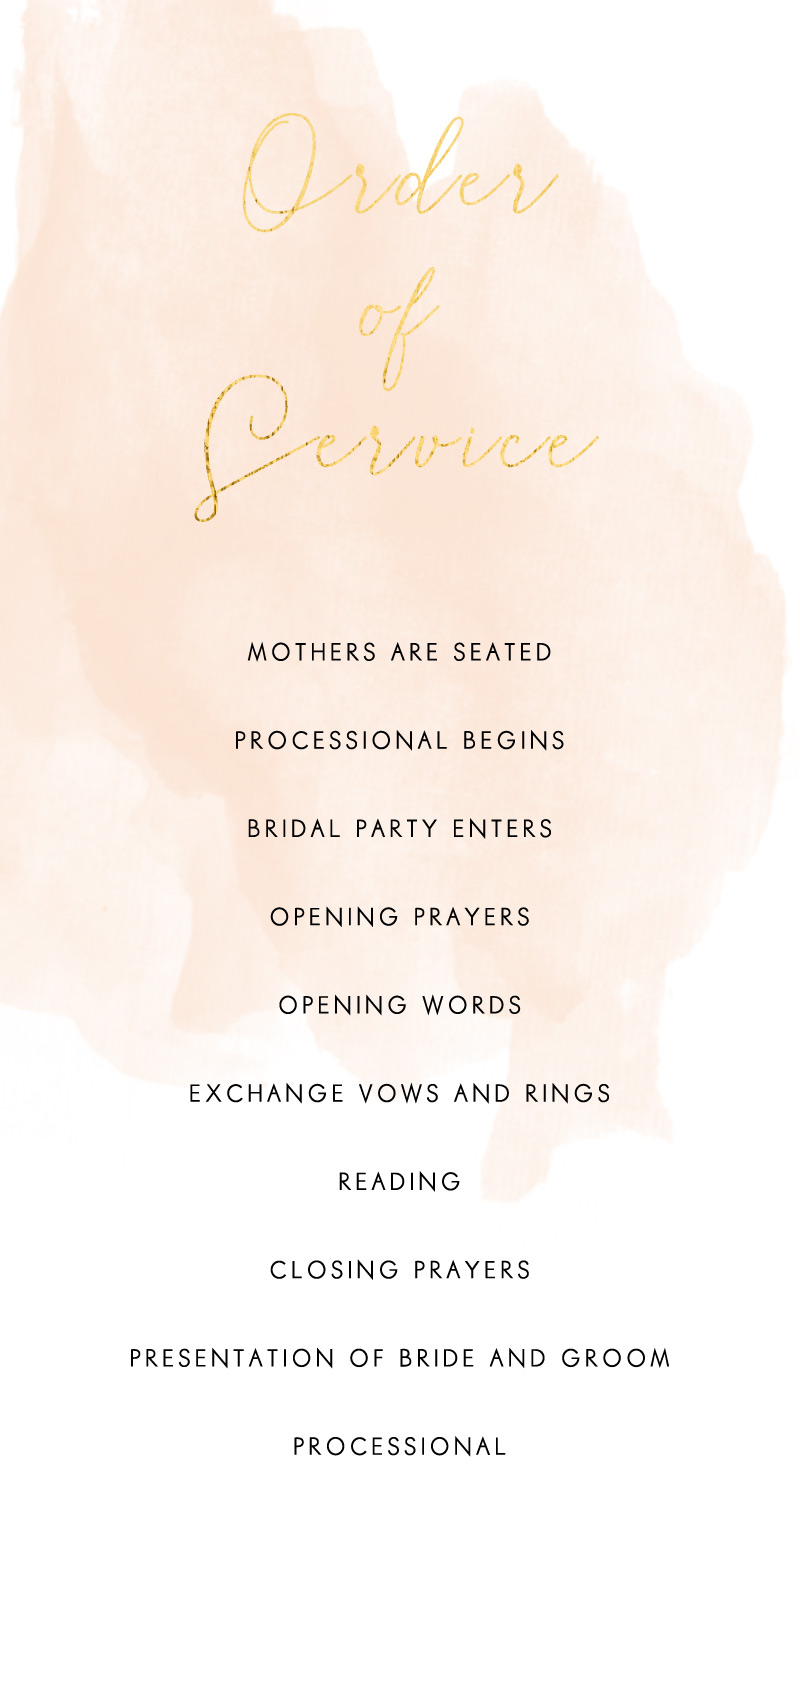 Rosey - Wedding Programs